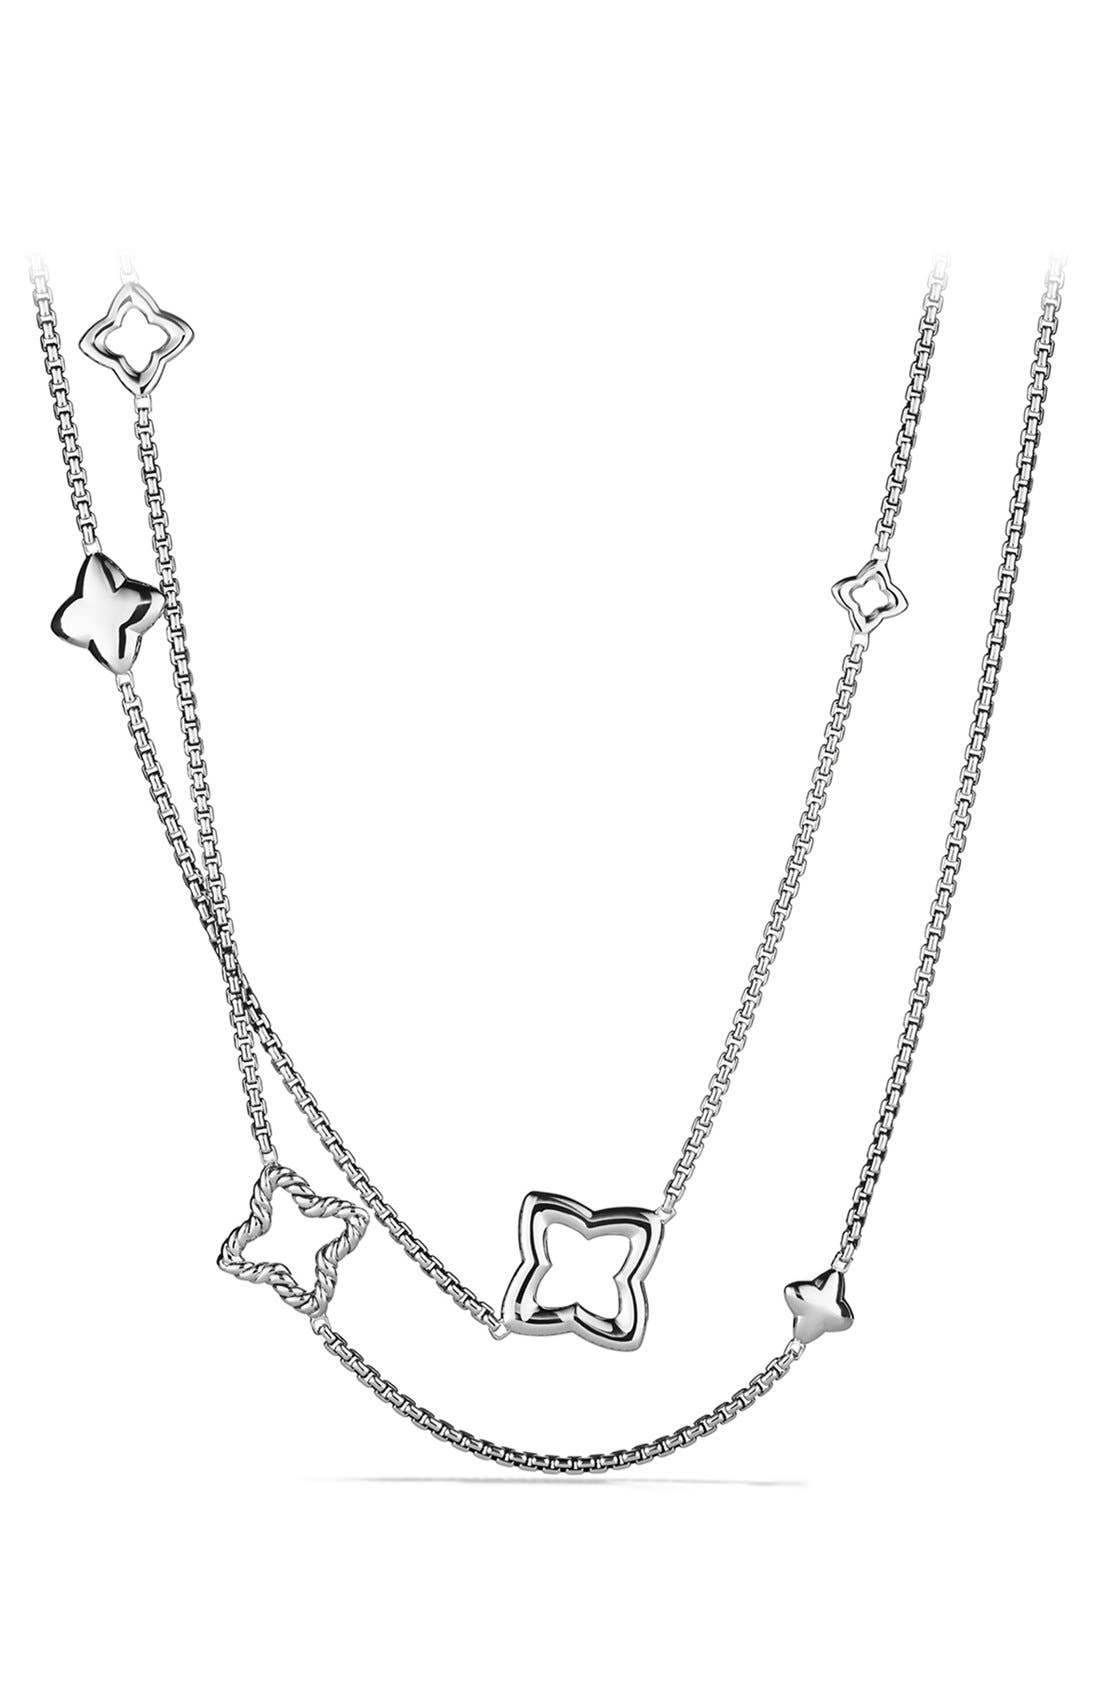 Alternate Image 1 Selected - David Yurman 'Quatrefoil' Chain Necklace